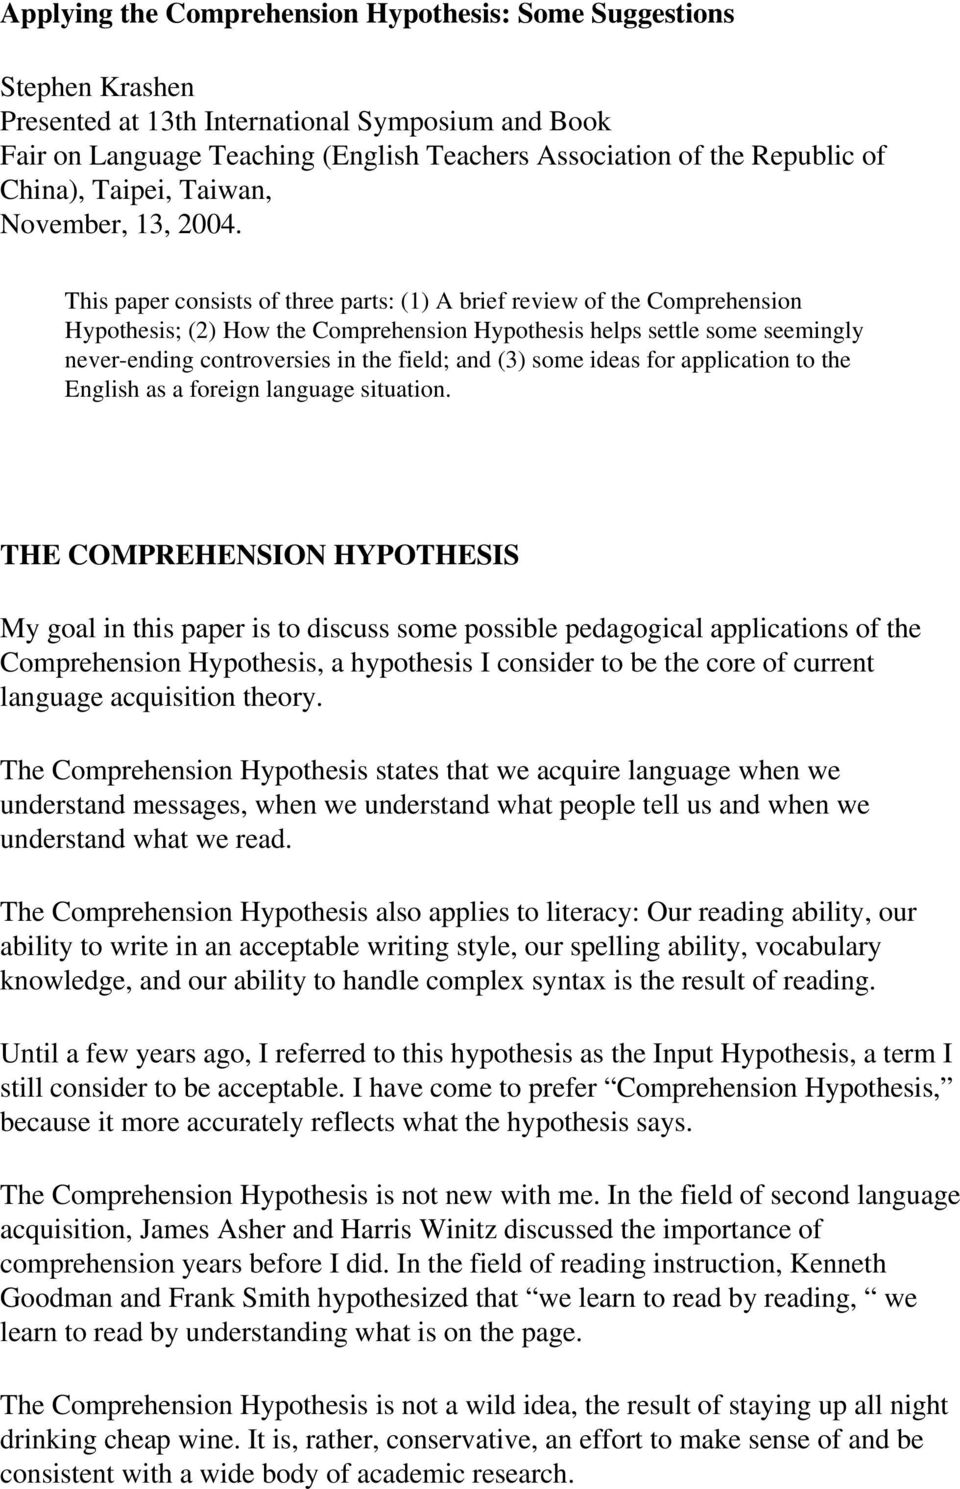 This paper consists of three parts: (1) A brief review of the Comprehension Hypothesis; (2) How the Comprehension Hypothesis helps settle some seemingly never-ending controversies in the field; and